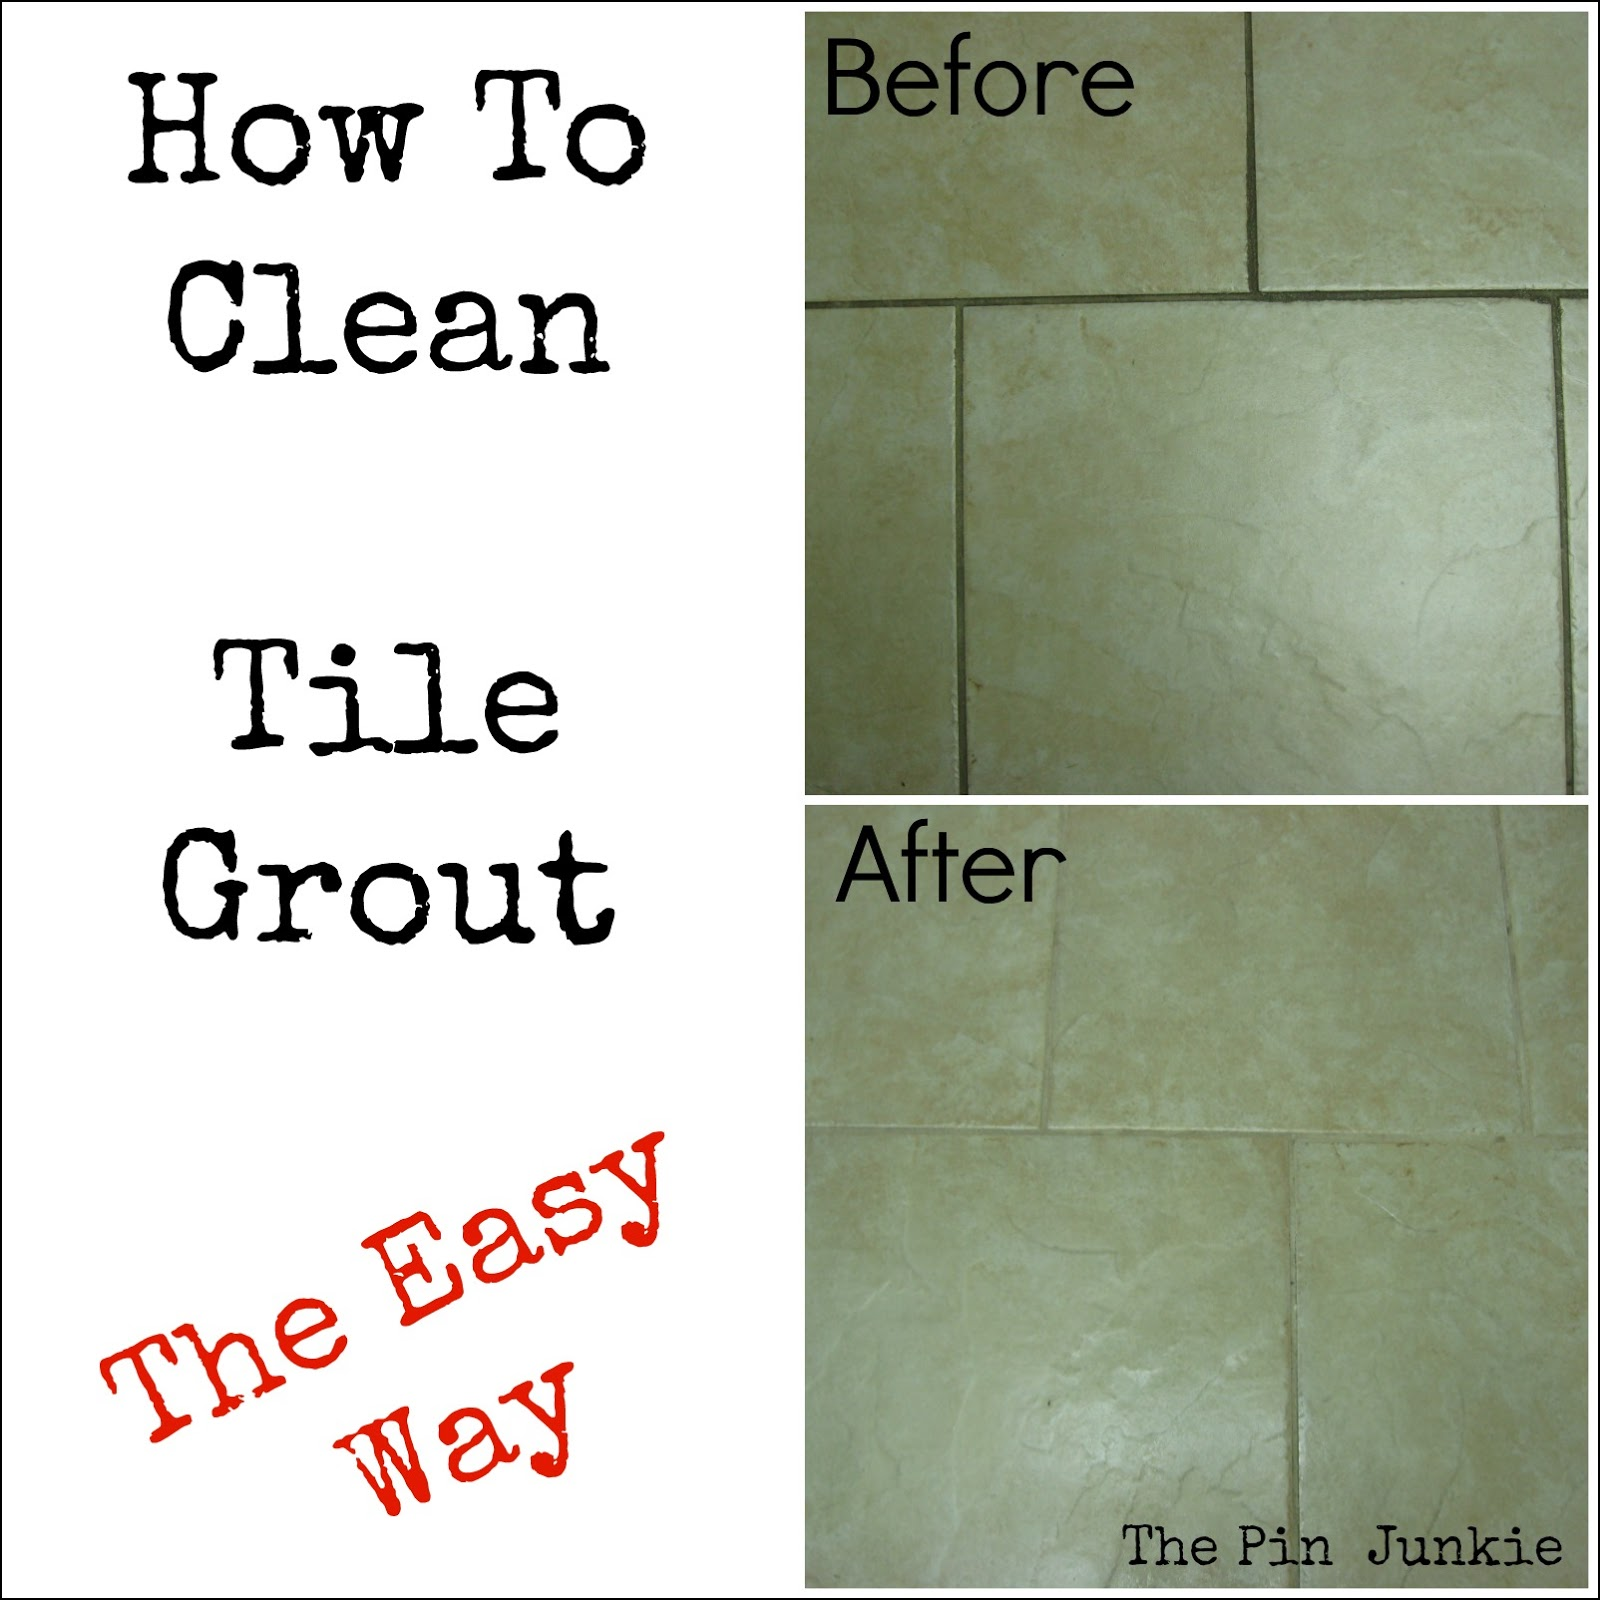 How to clean tile grout how to clean tile grout dailygadgetfo Choice Image